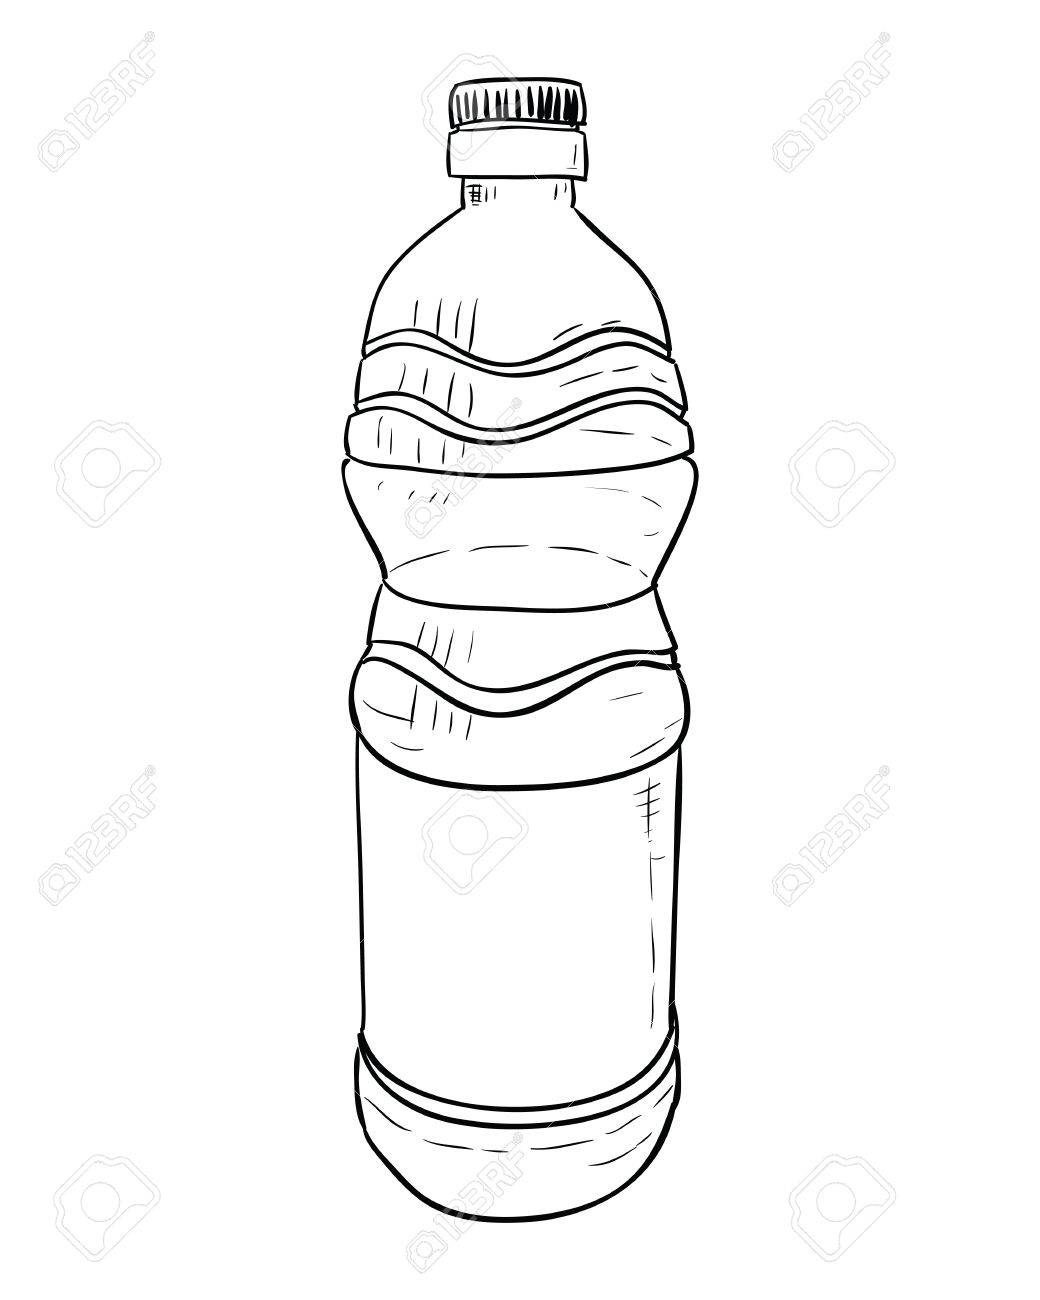 vector sketch of plastic bottle hand draw illustration royalty